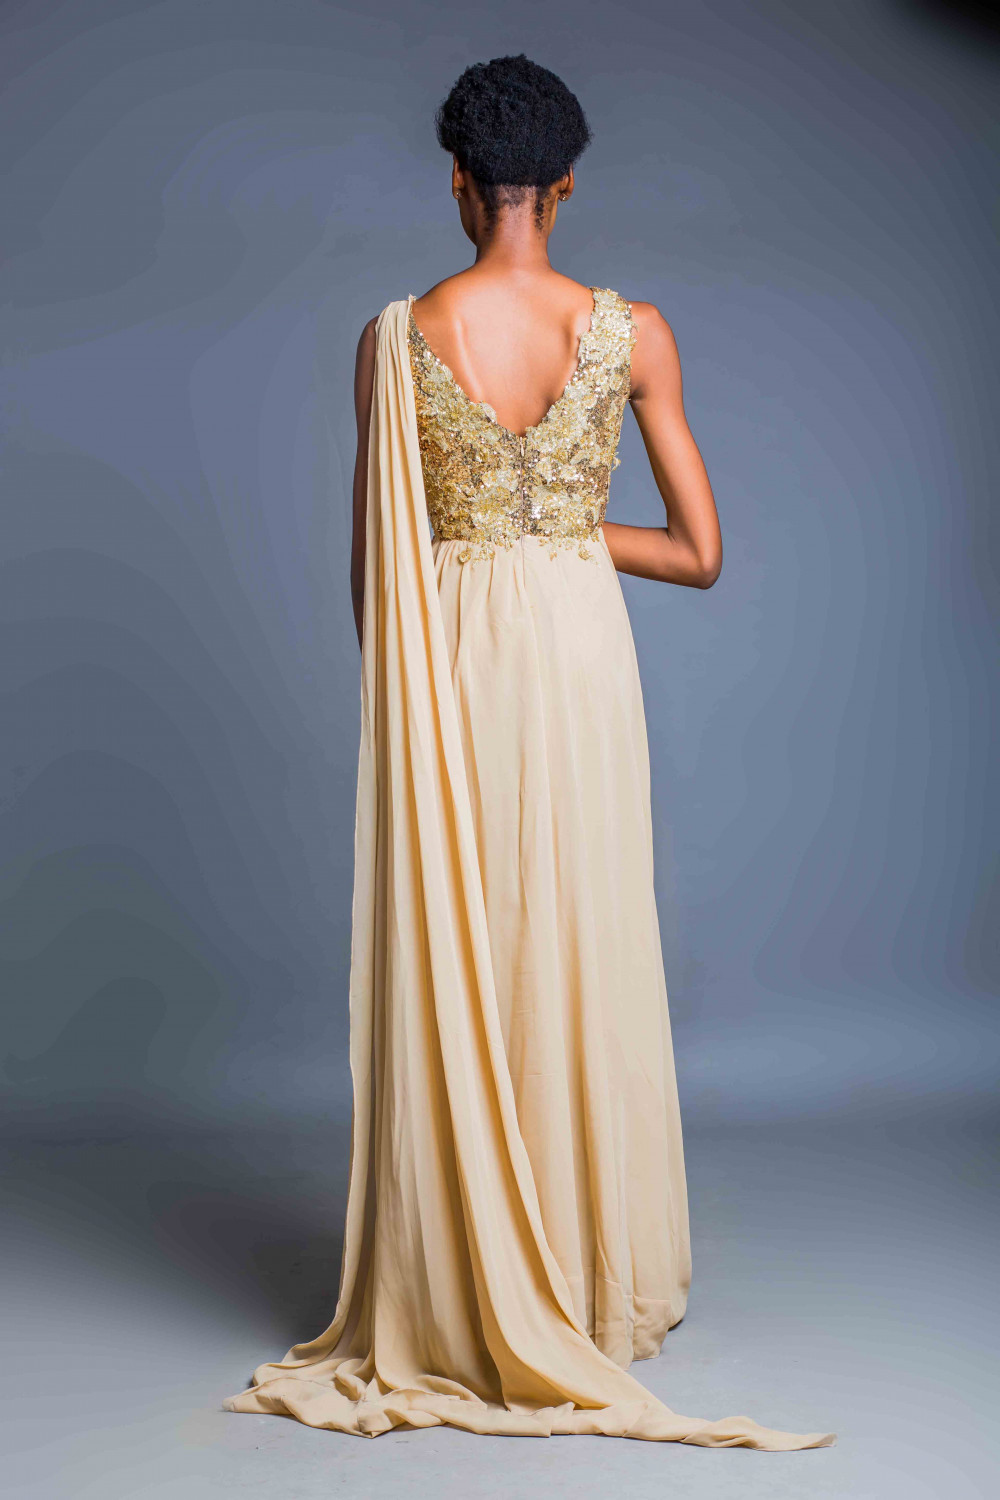 Hollerose Designs 2016 Collection Bridal 12